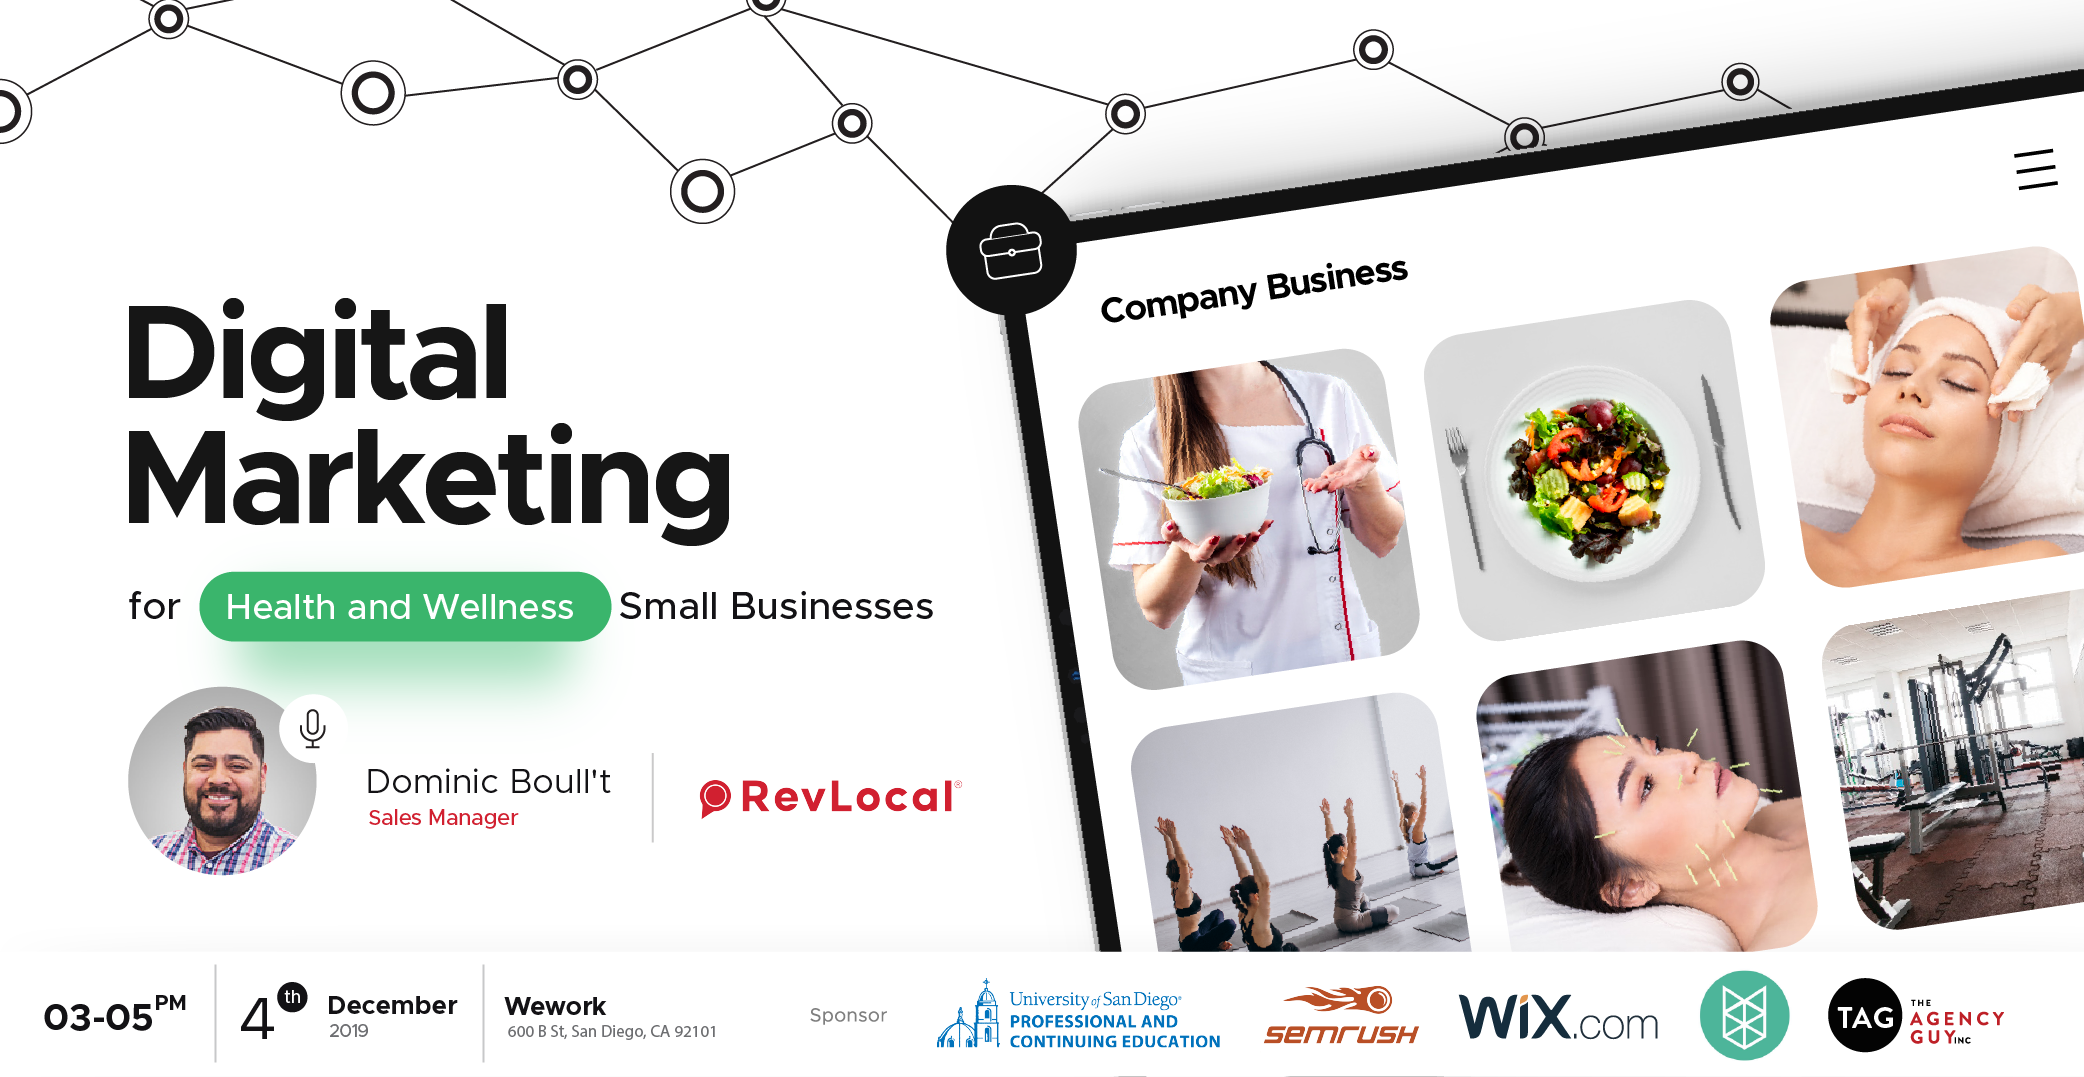 Digital Marketing for Health and Wellness Small Businesses